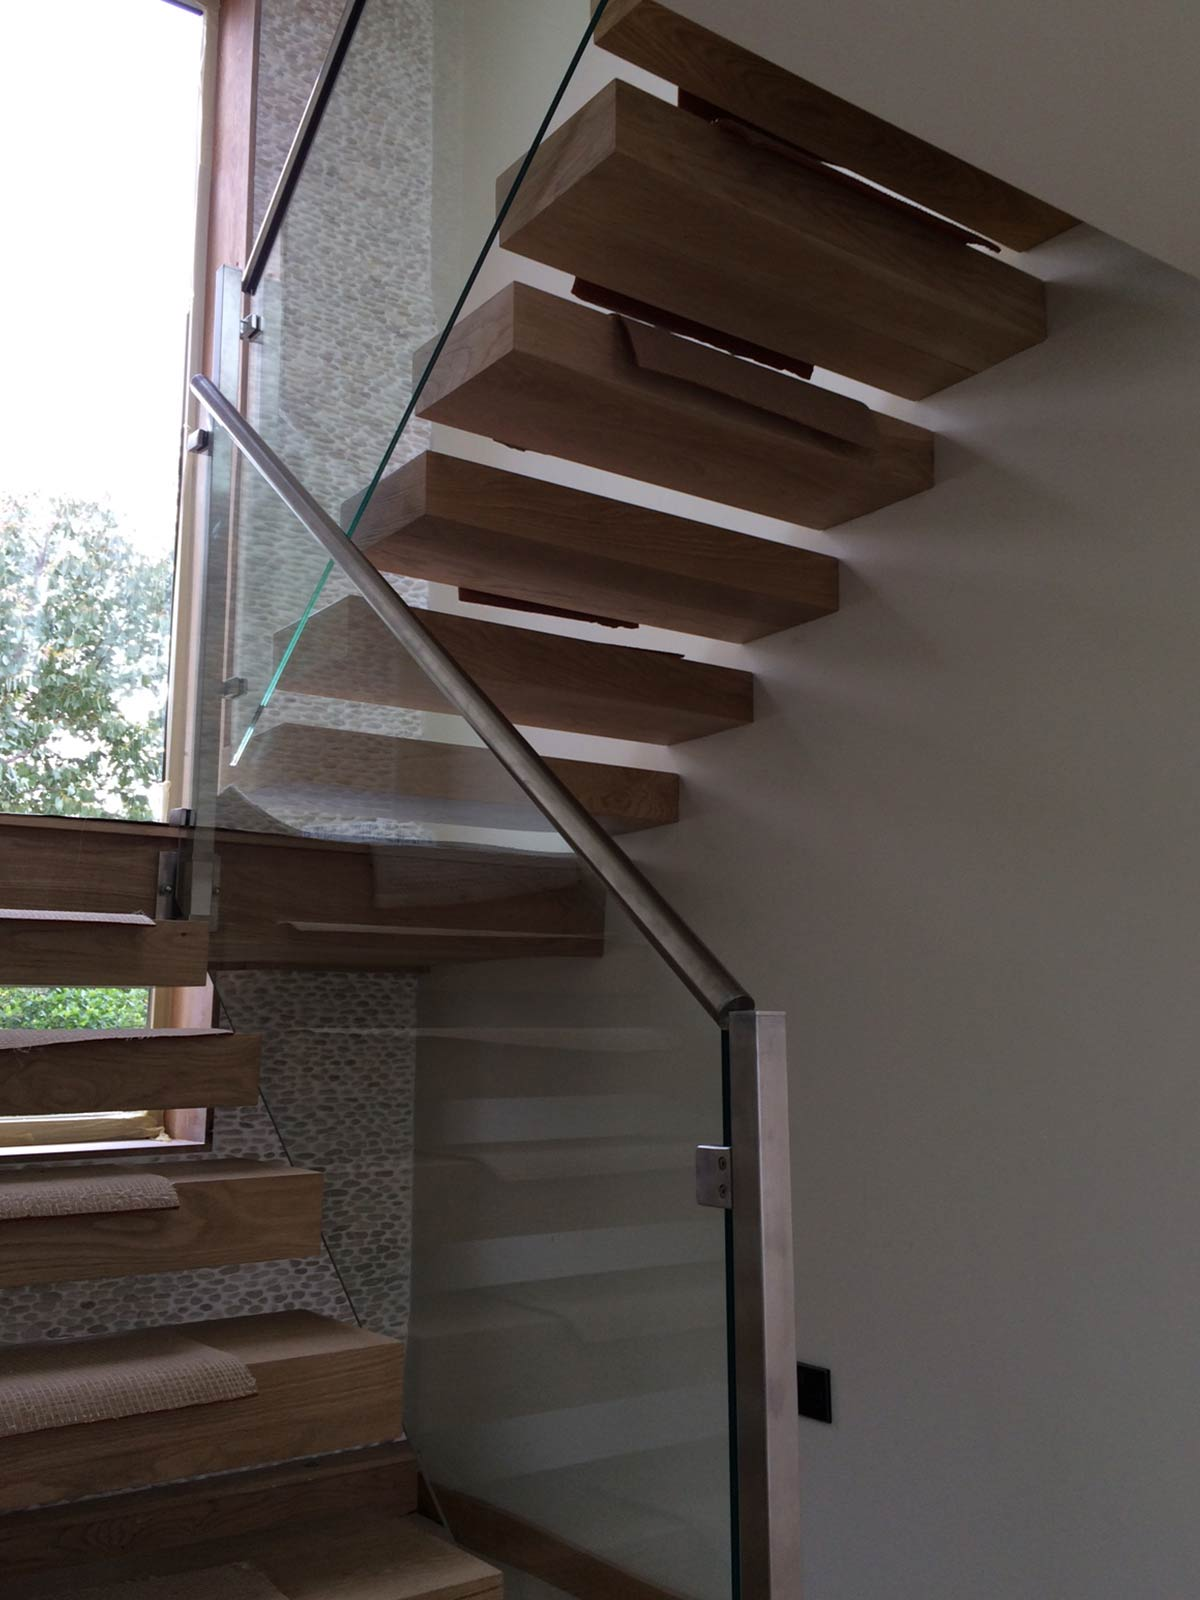 staircase glass balustrades with handrail